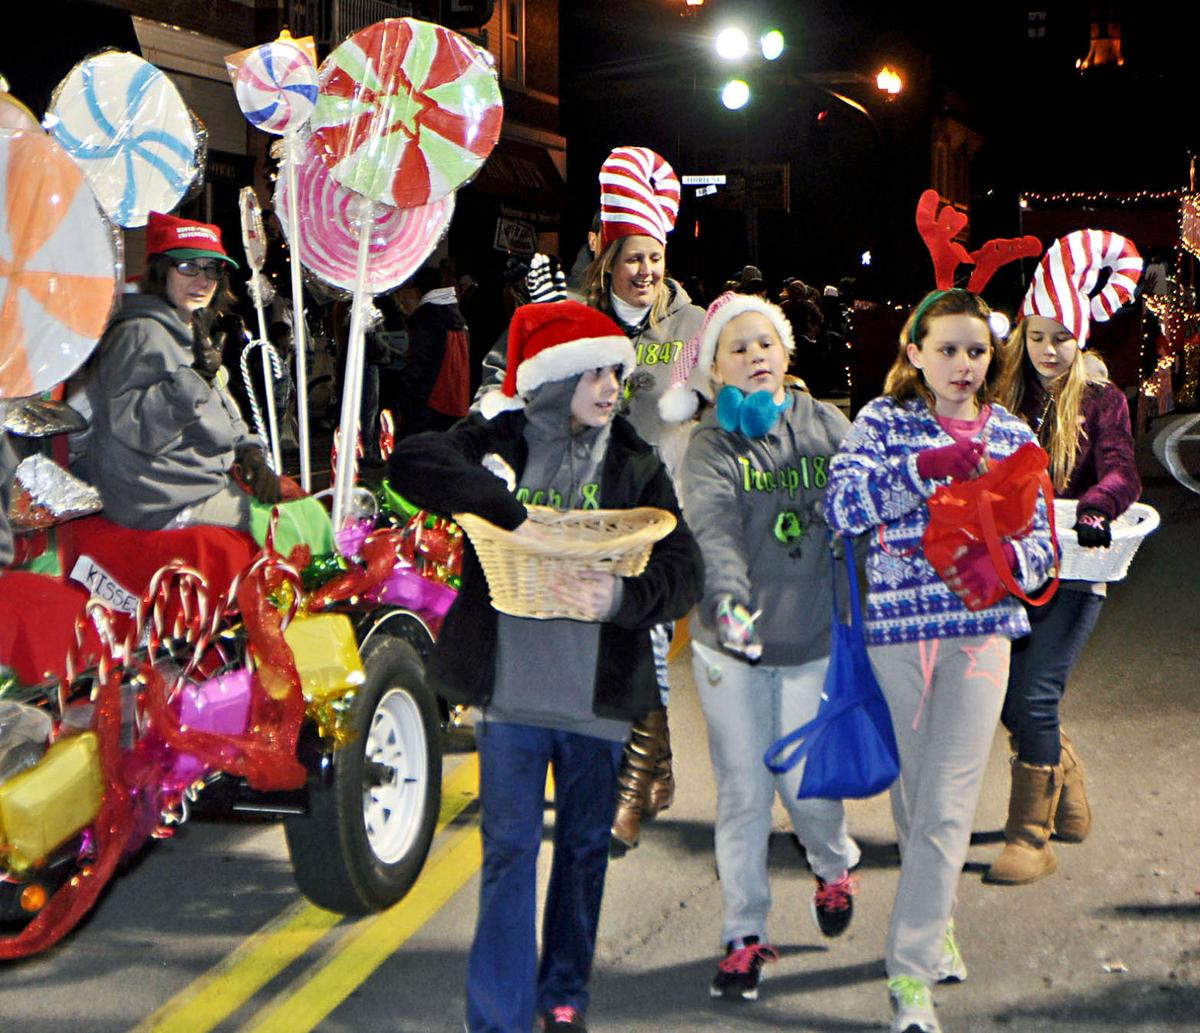 1847 toss lollipops friday night as they walk down main street next to their lollipop float in richmonds night of twinkling lights christmas parade